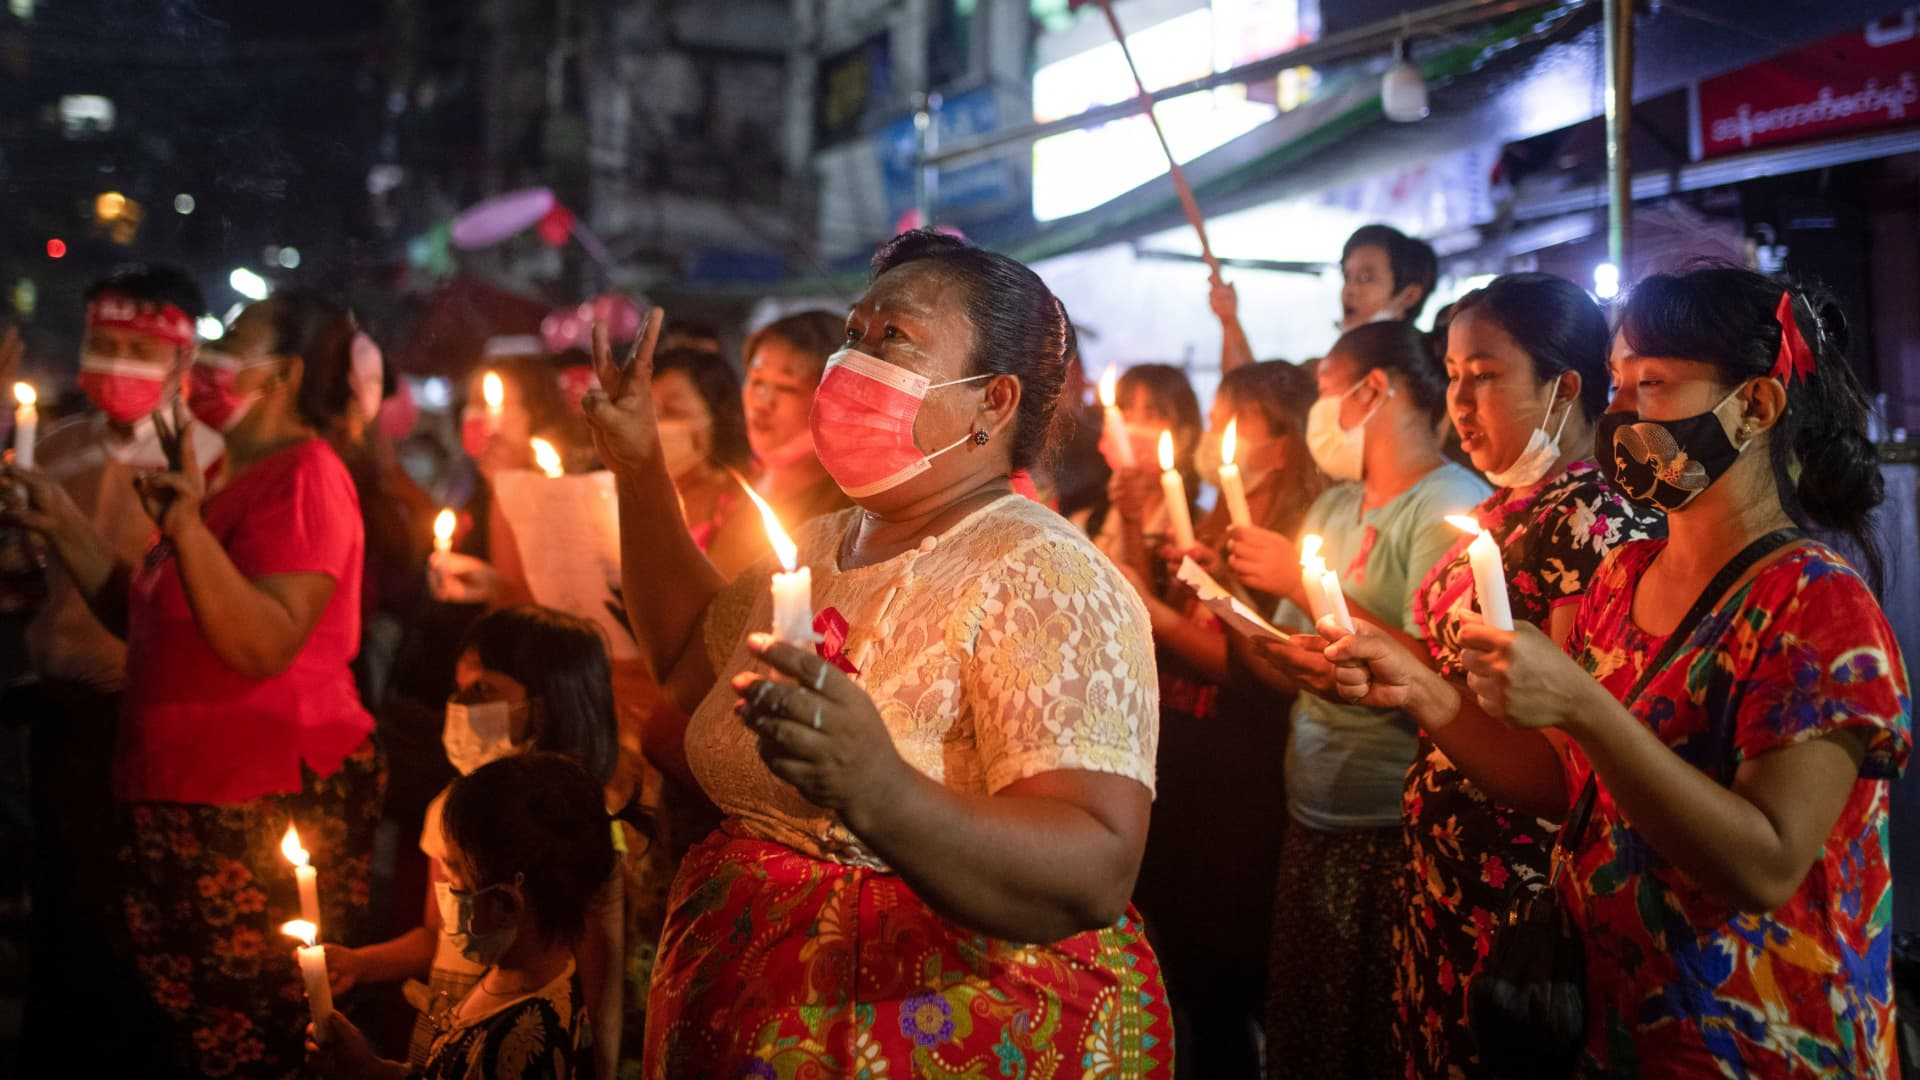 Women wearing red ribbons hold candles during a night protest against the military coup in Yangon, Myanmar February 5, 2021.